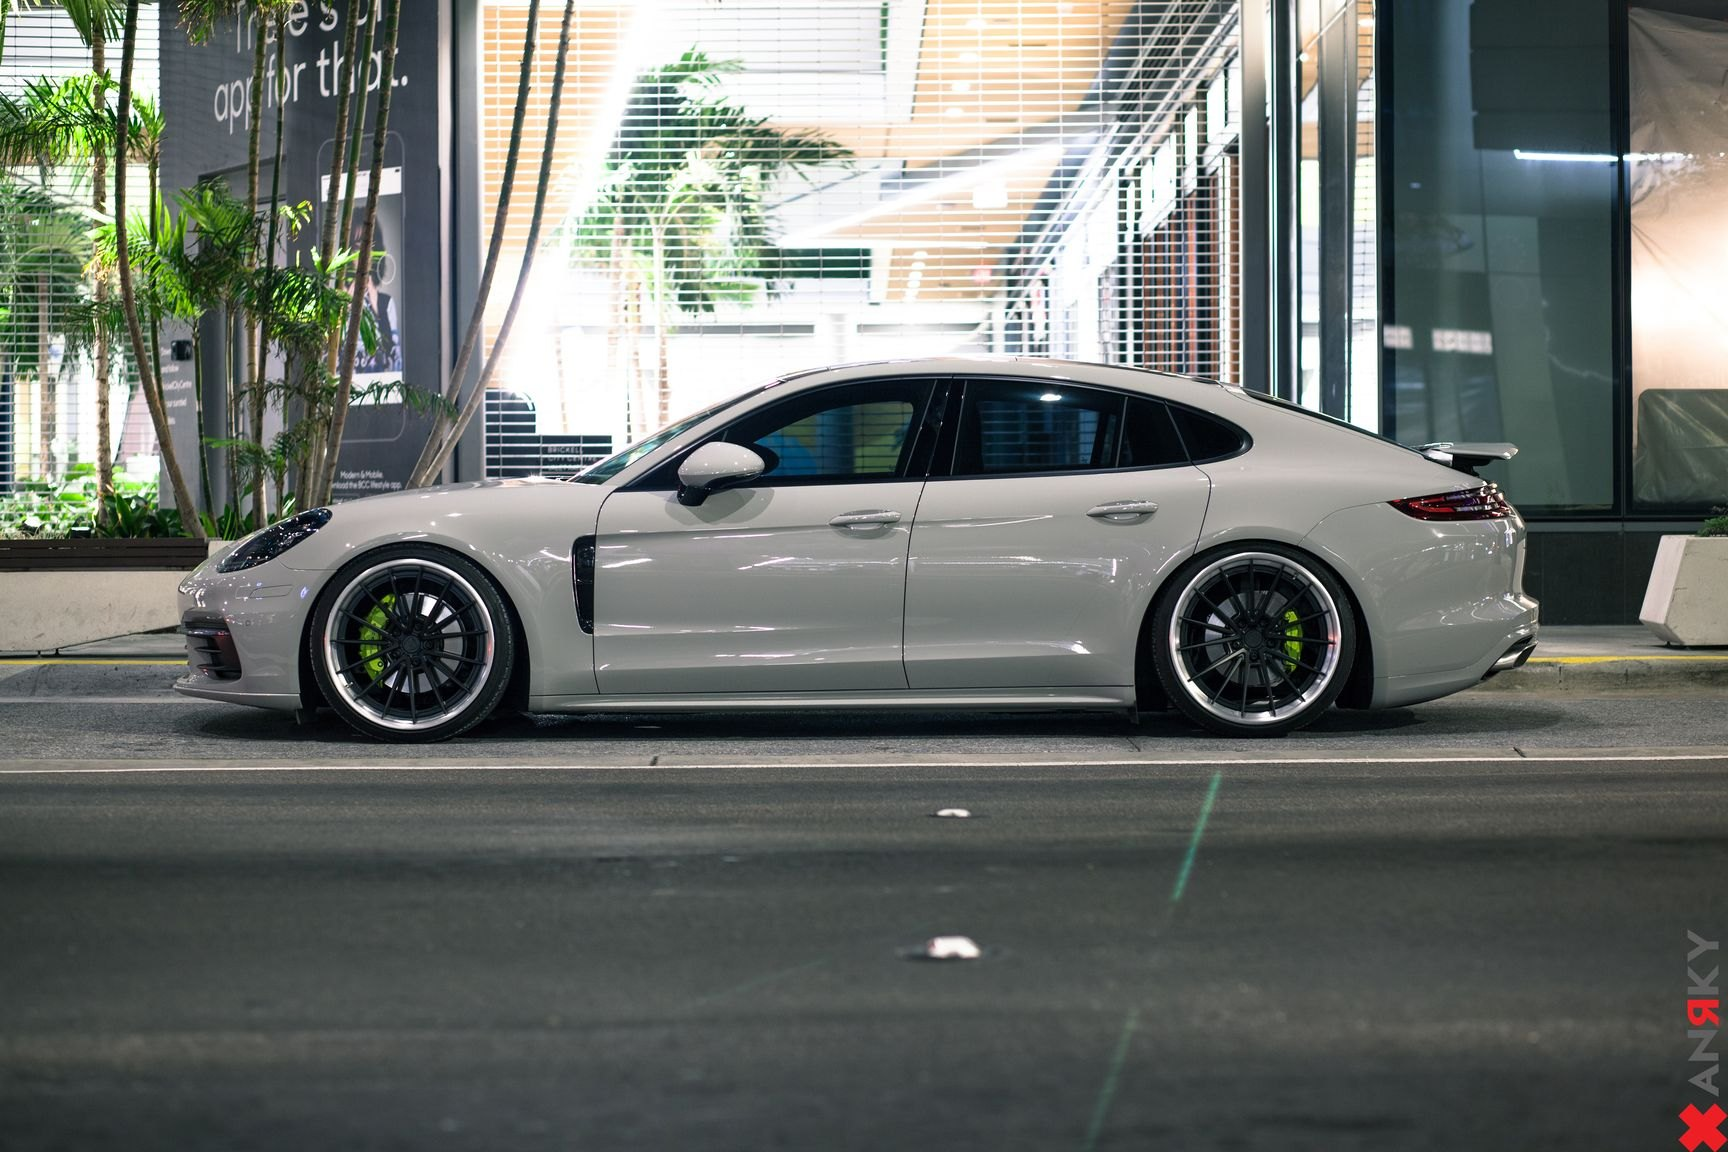 Amazing Contrast White Porsche Panamera On Satin Black Anrky Wheels Carid Com Gallery